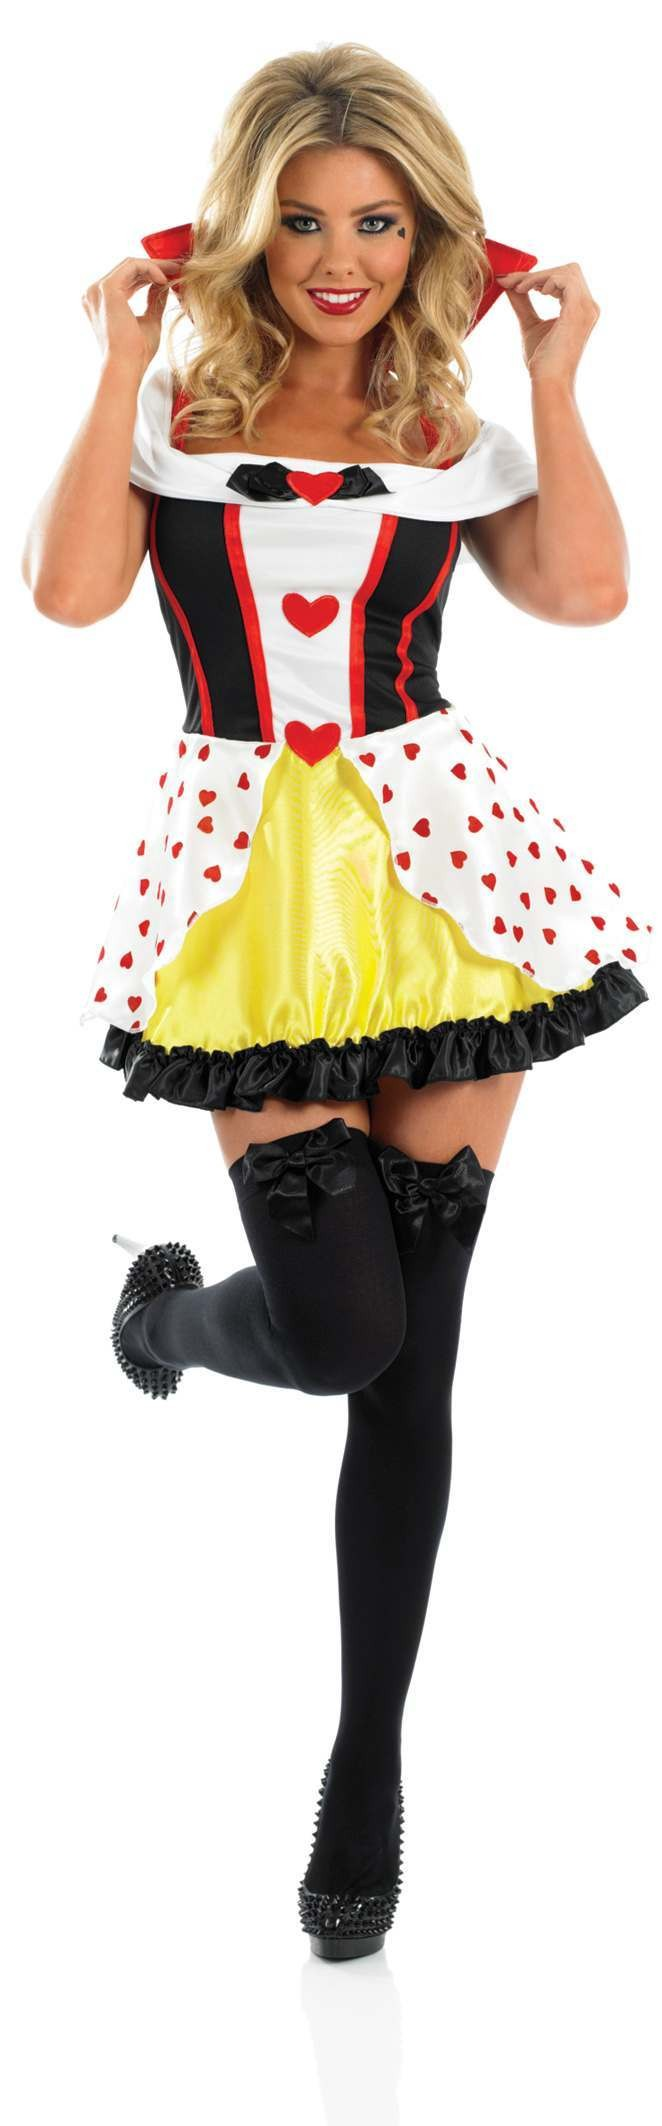 Ladies Queen Of Hearts Fairy Tales Outfit - Size 28-30 (Black, White)